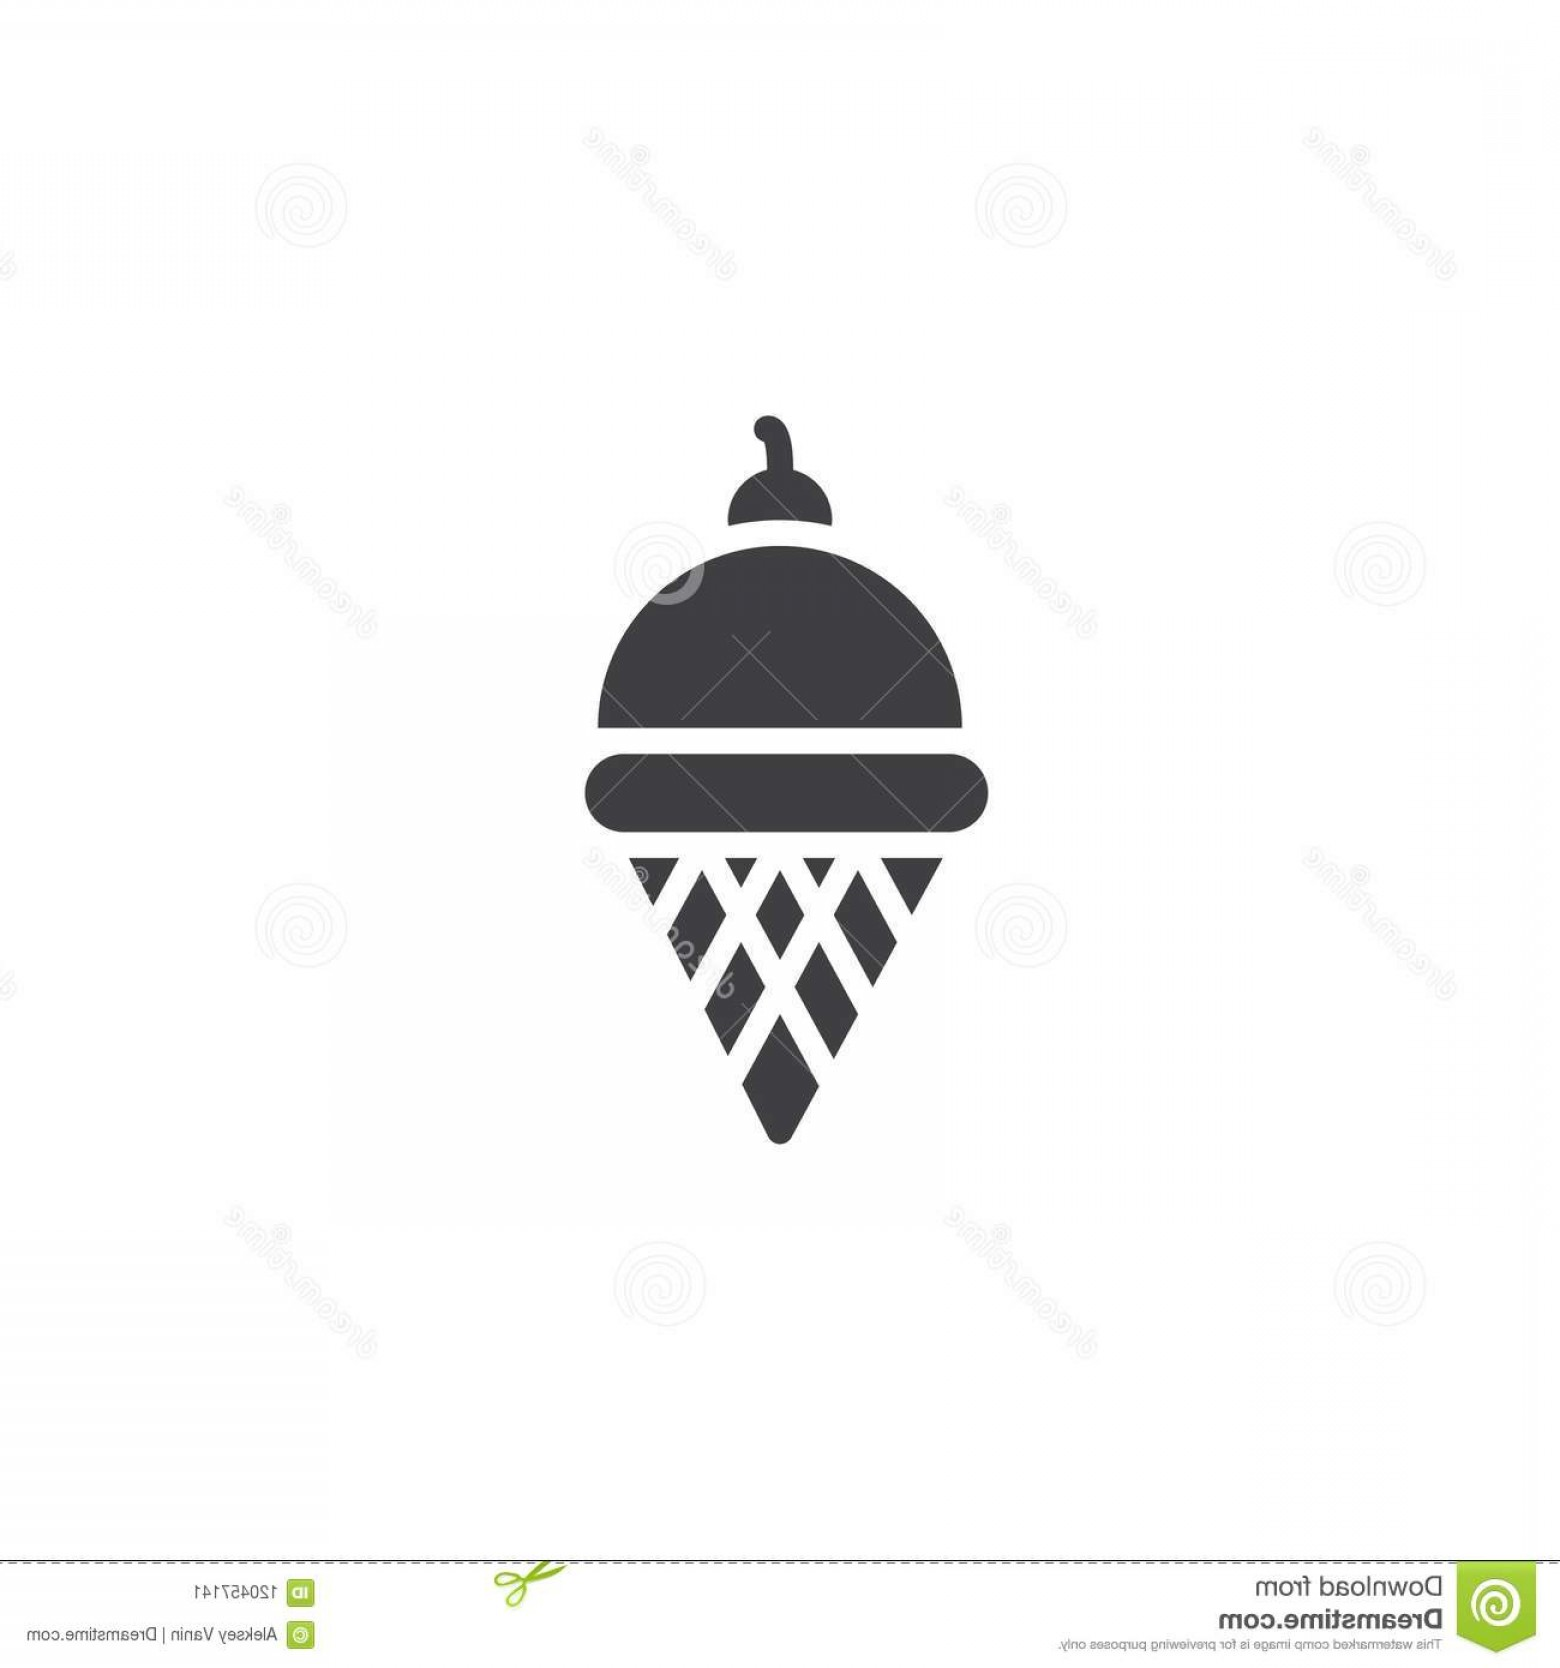 Snow Cone Outline Vector: Wafer Ice Cream Cone Vector Icon Wafer Ice Cream Cone Vector Icon Filled Flat Sign Mobile Concept Web Design Berry Ice Image